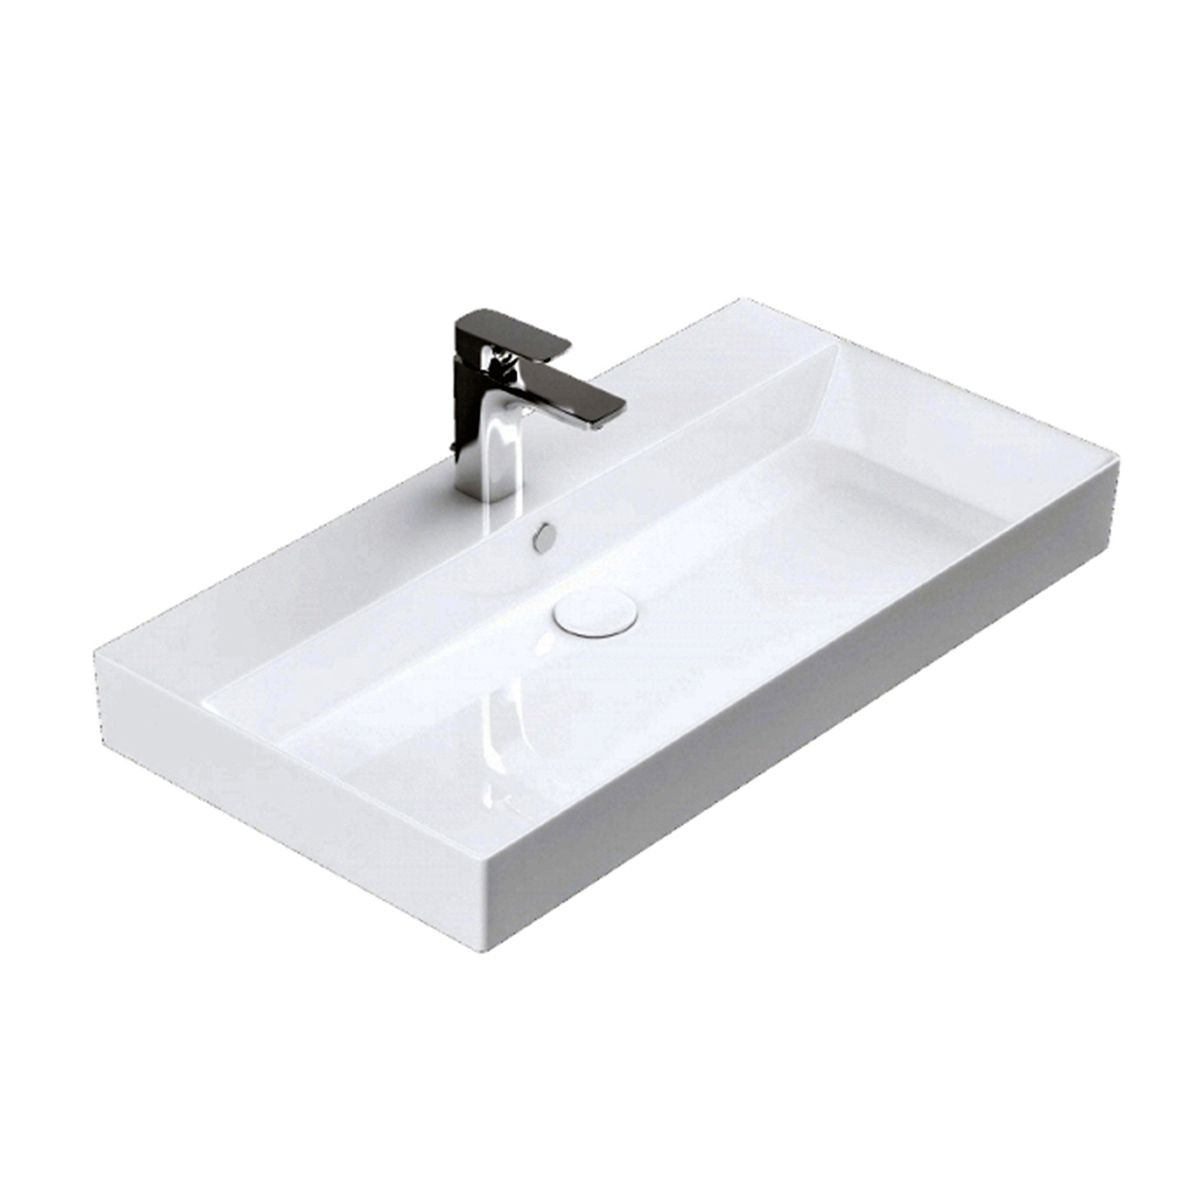 energy 70 ada compliant wall mounted bathroom sink in ceramic white 27 6